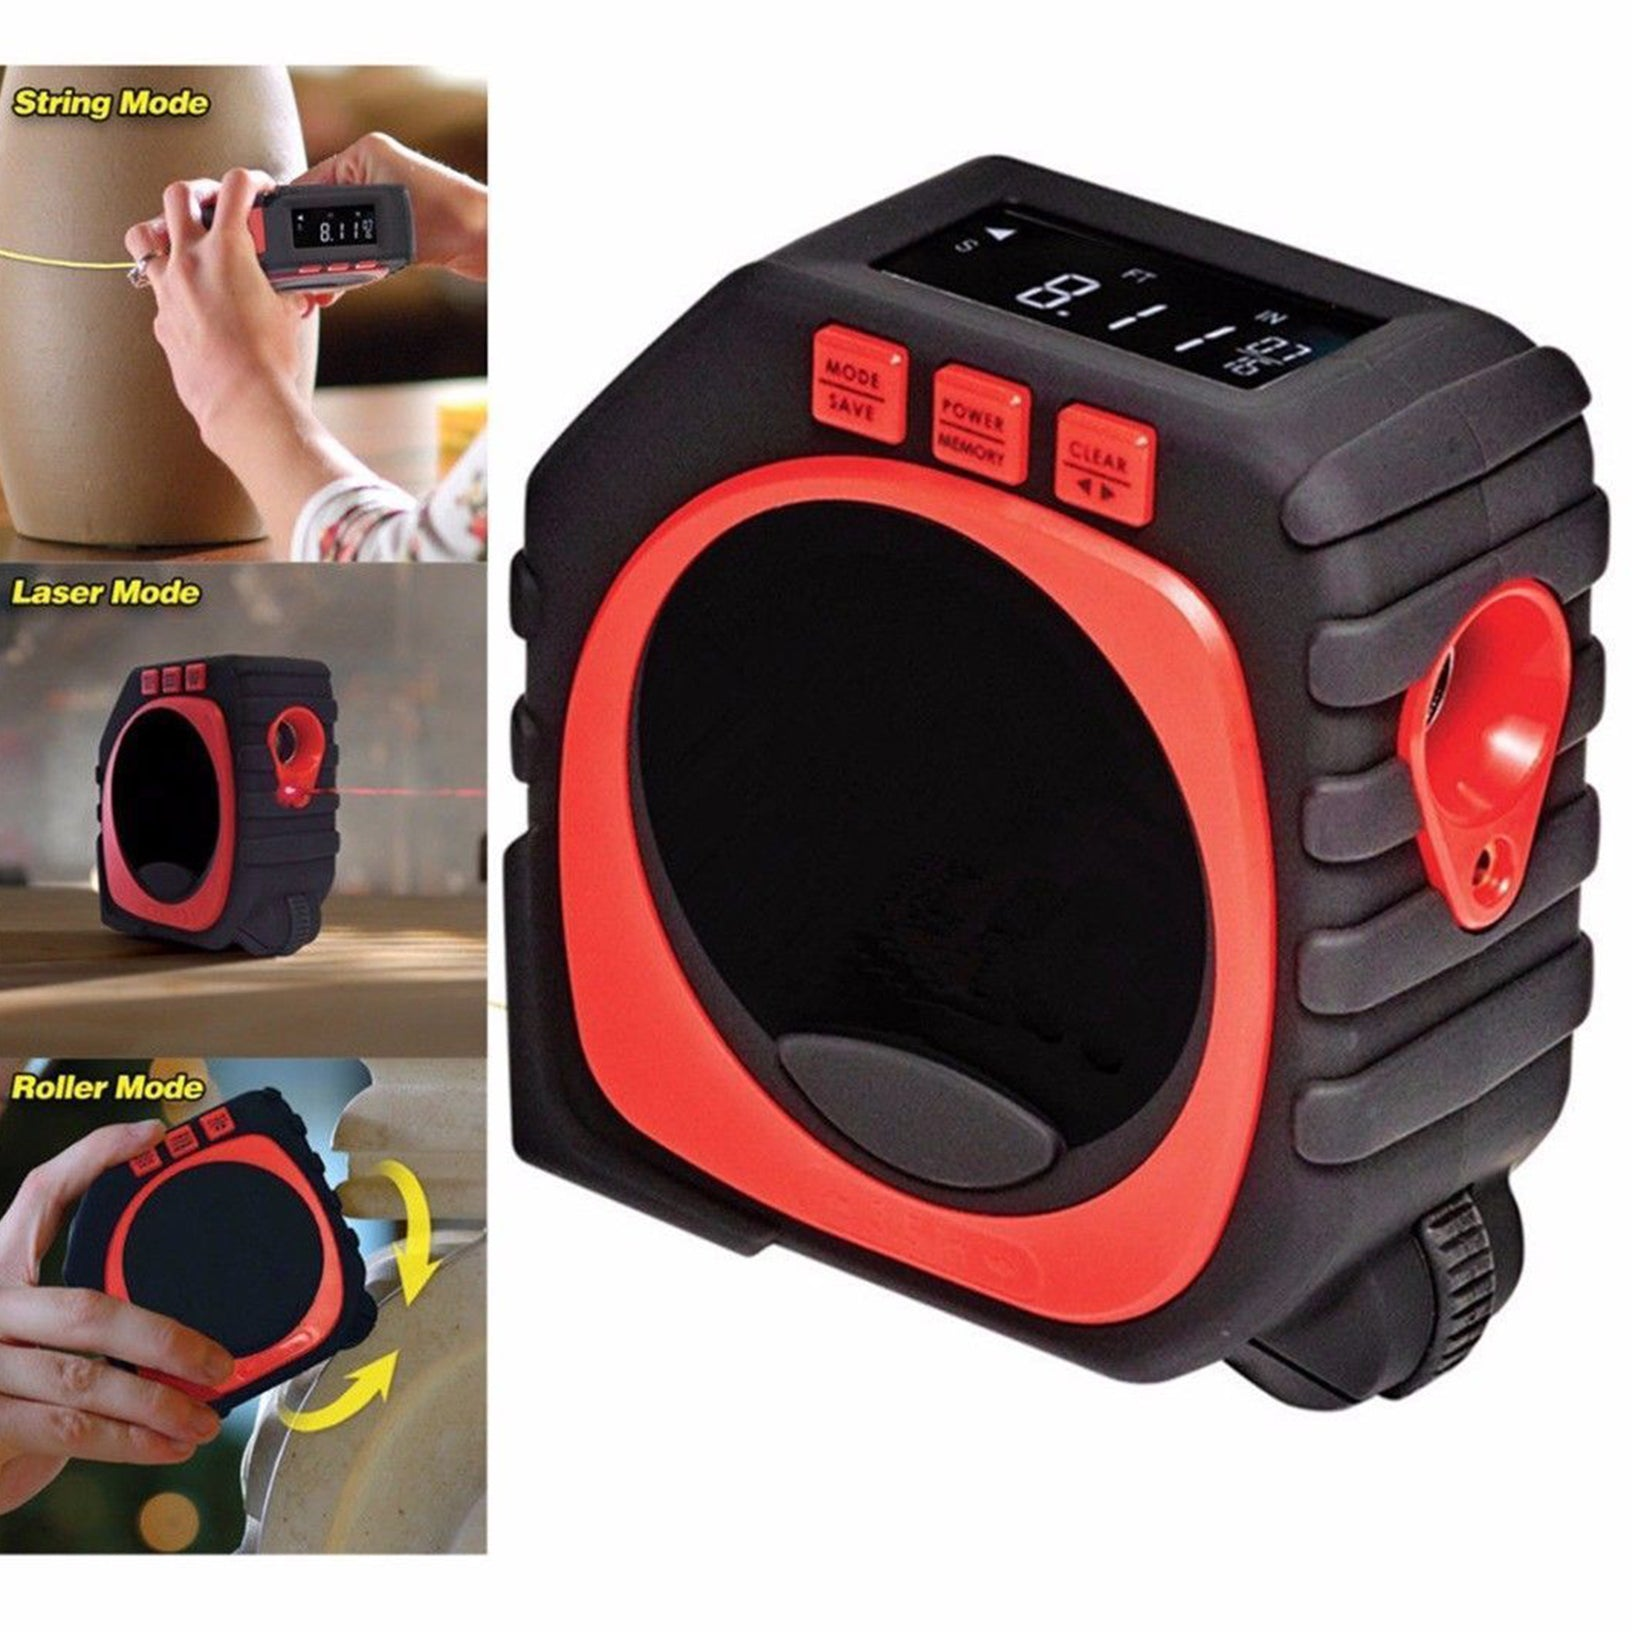 MasterMeasure 3-in-1 Digital Tape Measure - Laser Mode / Roller Mode / String Mode